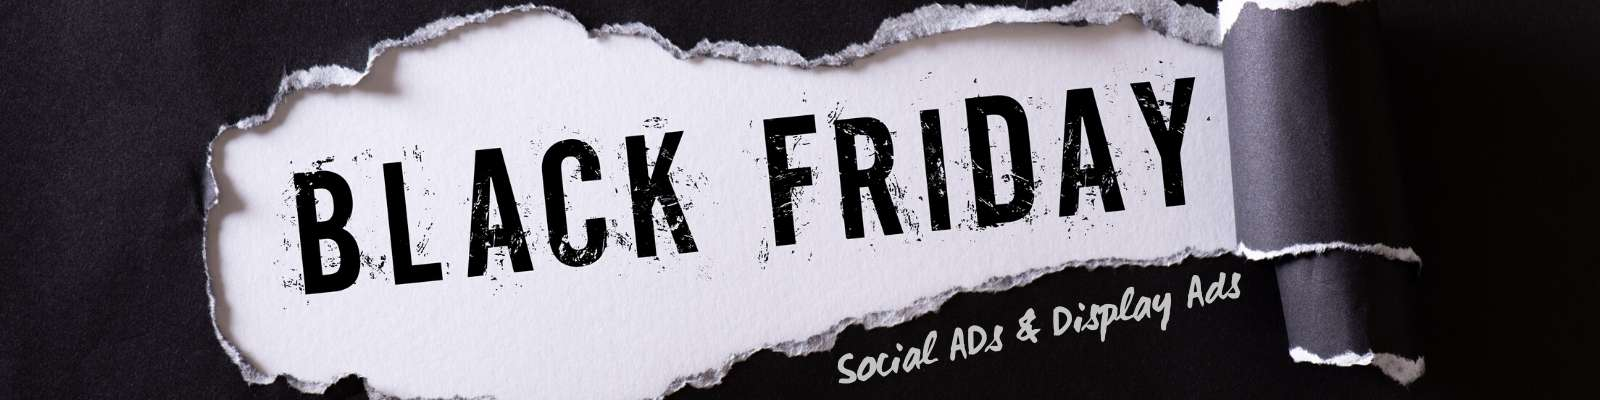 estrategia-markting-social-ads-black-friday-compressor